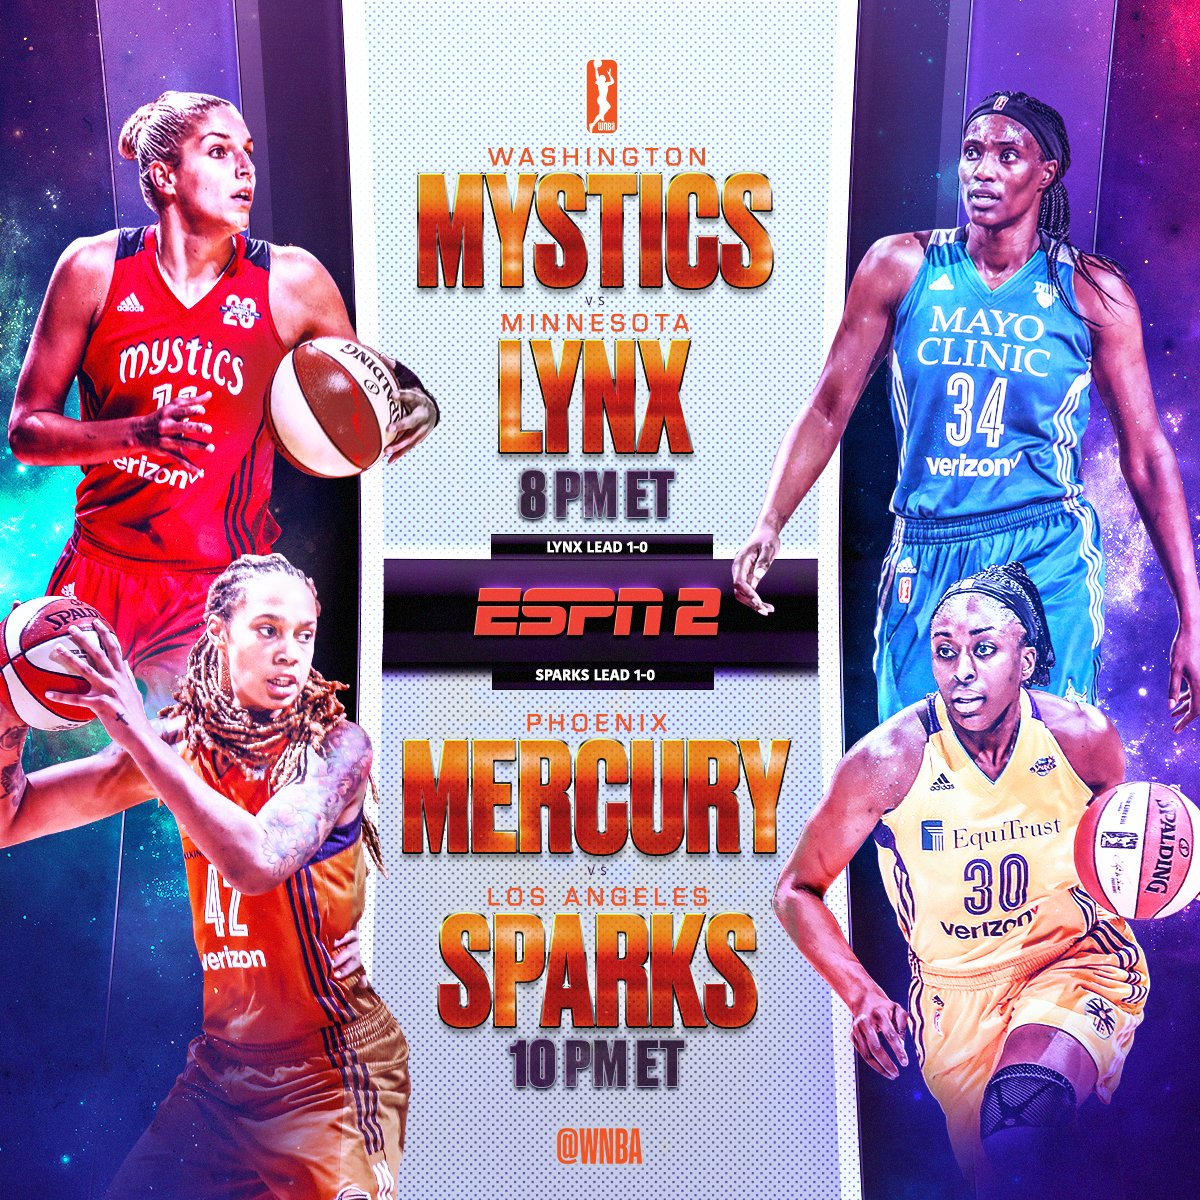 Game 2 of the best-of-5 Semifinals... tonight on ESPN2! #WNBAPlayoffs   » https://t.co/2hvOVzwuEh https://t.co/TQvlB5oBB4